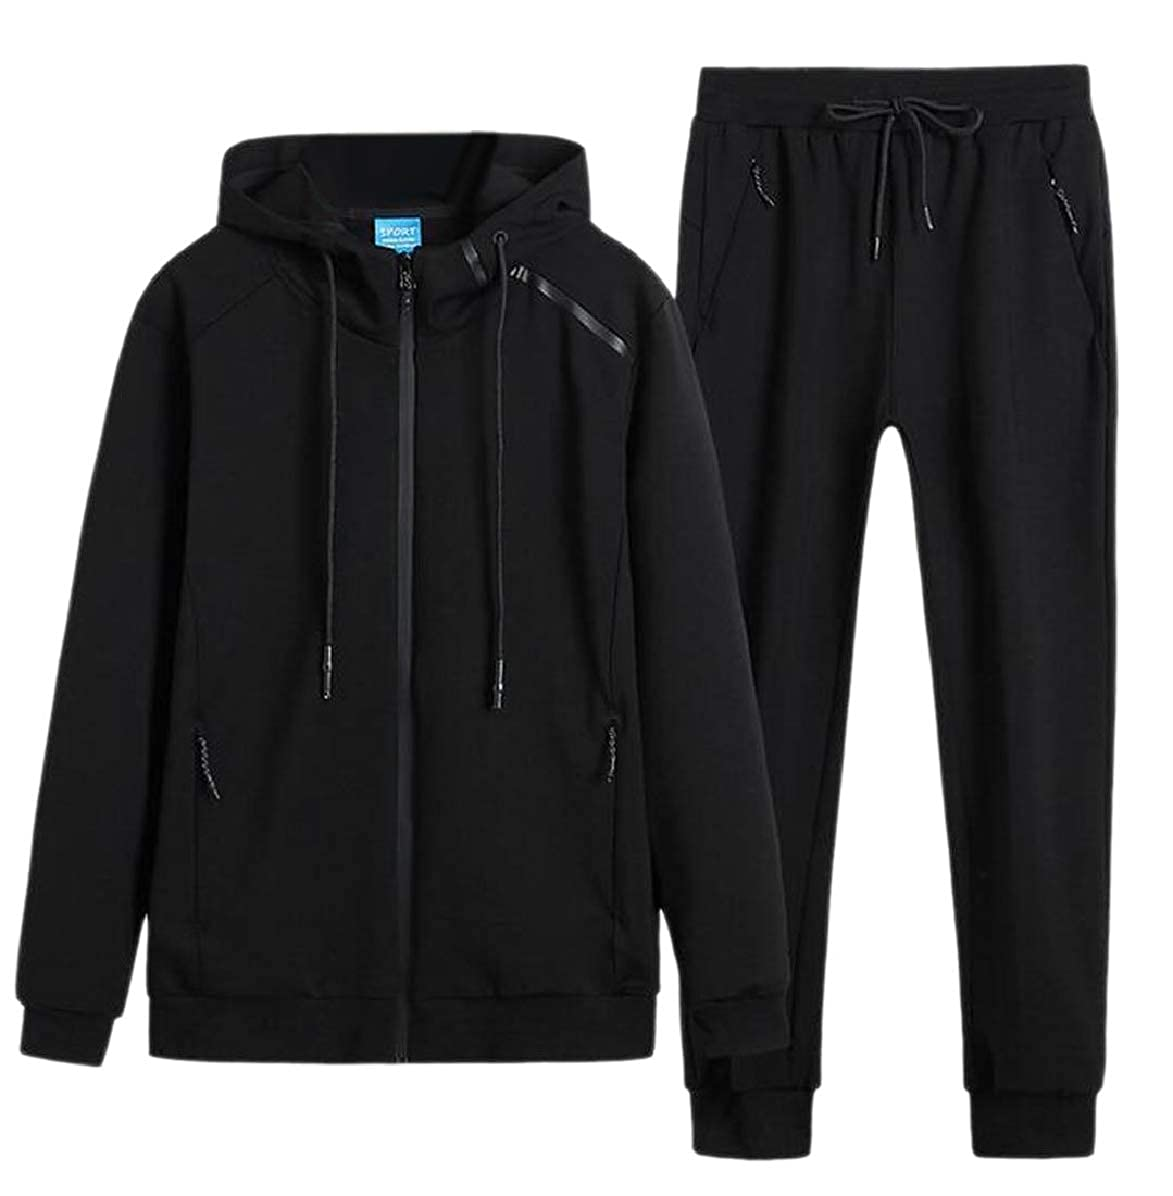 ONTBYB Mens Big /& Tall Two Piece Outfits Sweatpants Sweatsuit Hooded Tracksuits